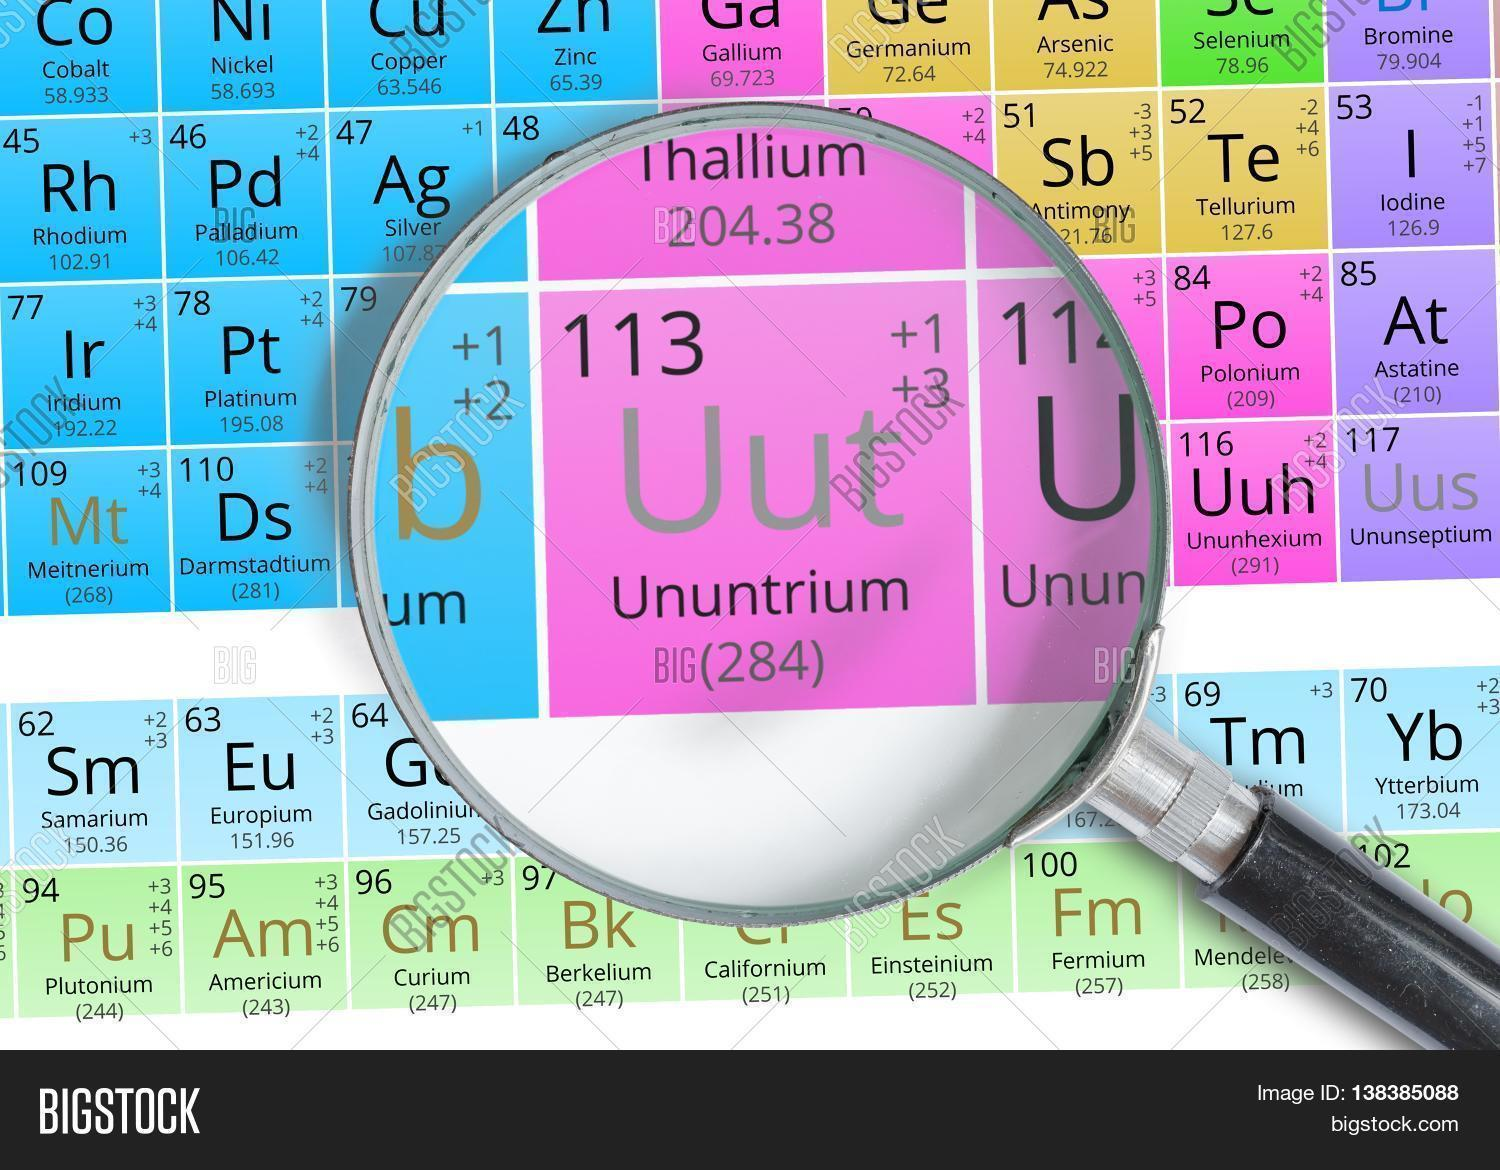 Ununtrium symbol uut element image photo bigstock ununtrium symbol uut element of the periodic table zoomed wit urtaz Images